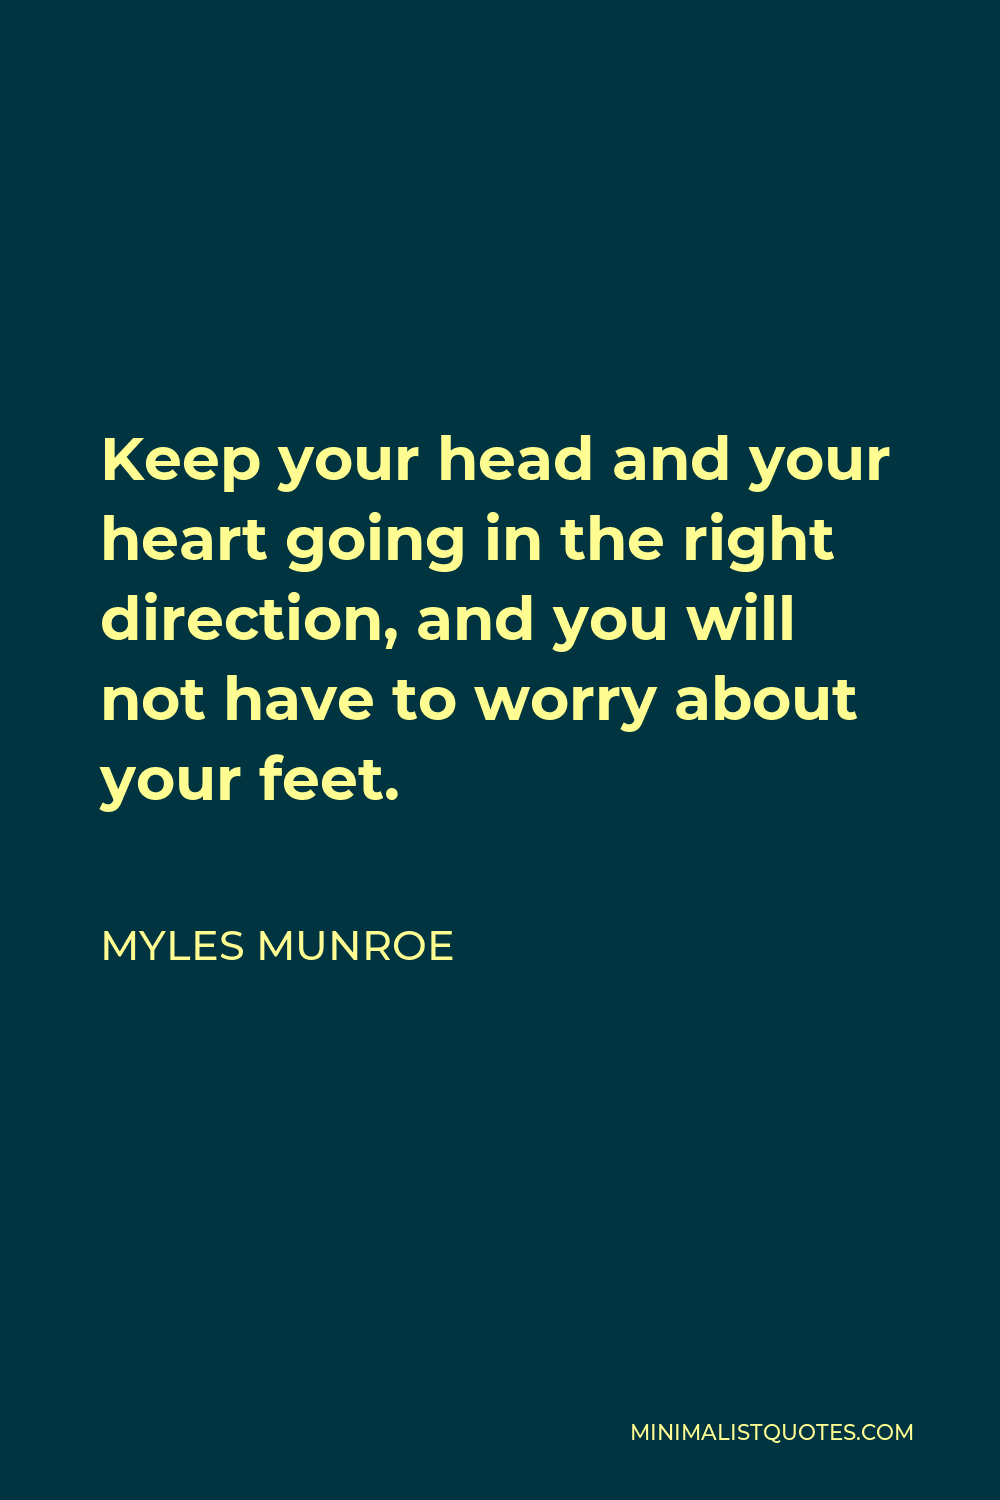 Myles Munroe Quote - Keep your head and your heart going in the right direction, and you will not have to worry about your feet.